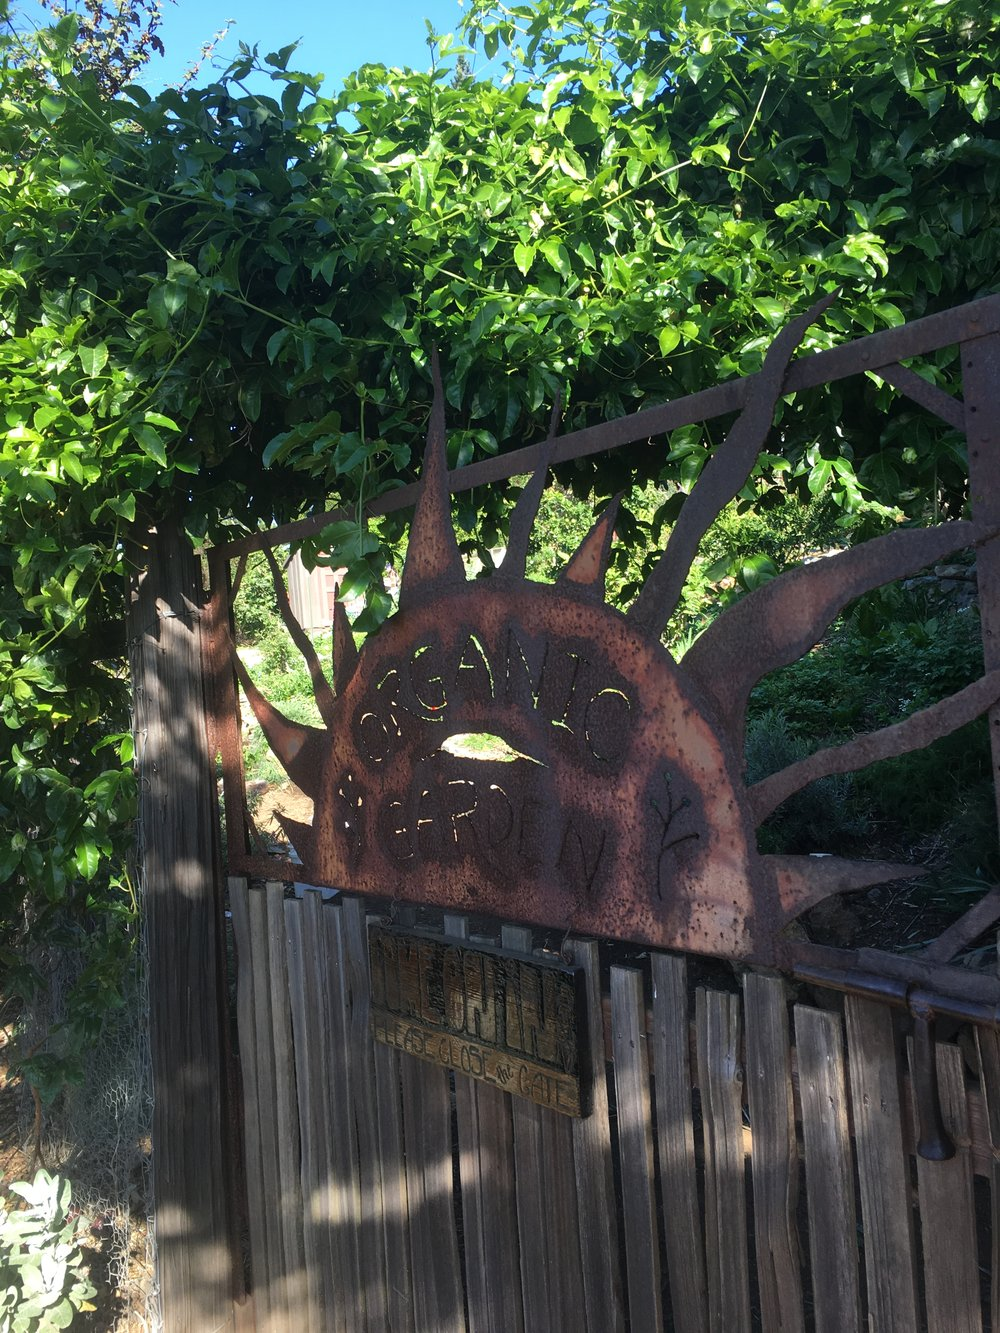 Hand-wrought gate from up-cycled material, Treebones, Big Sur